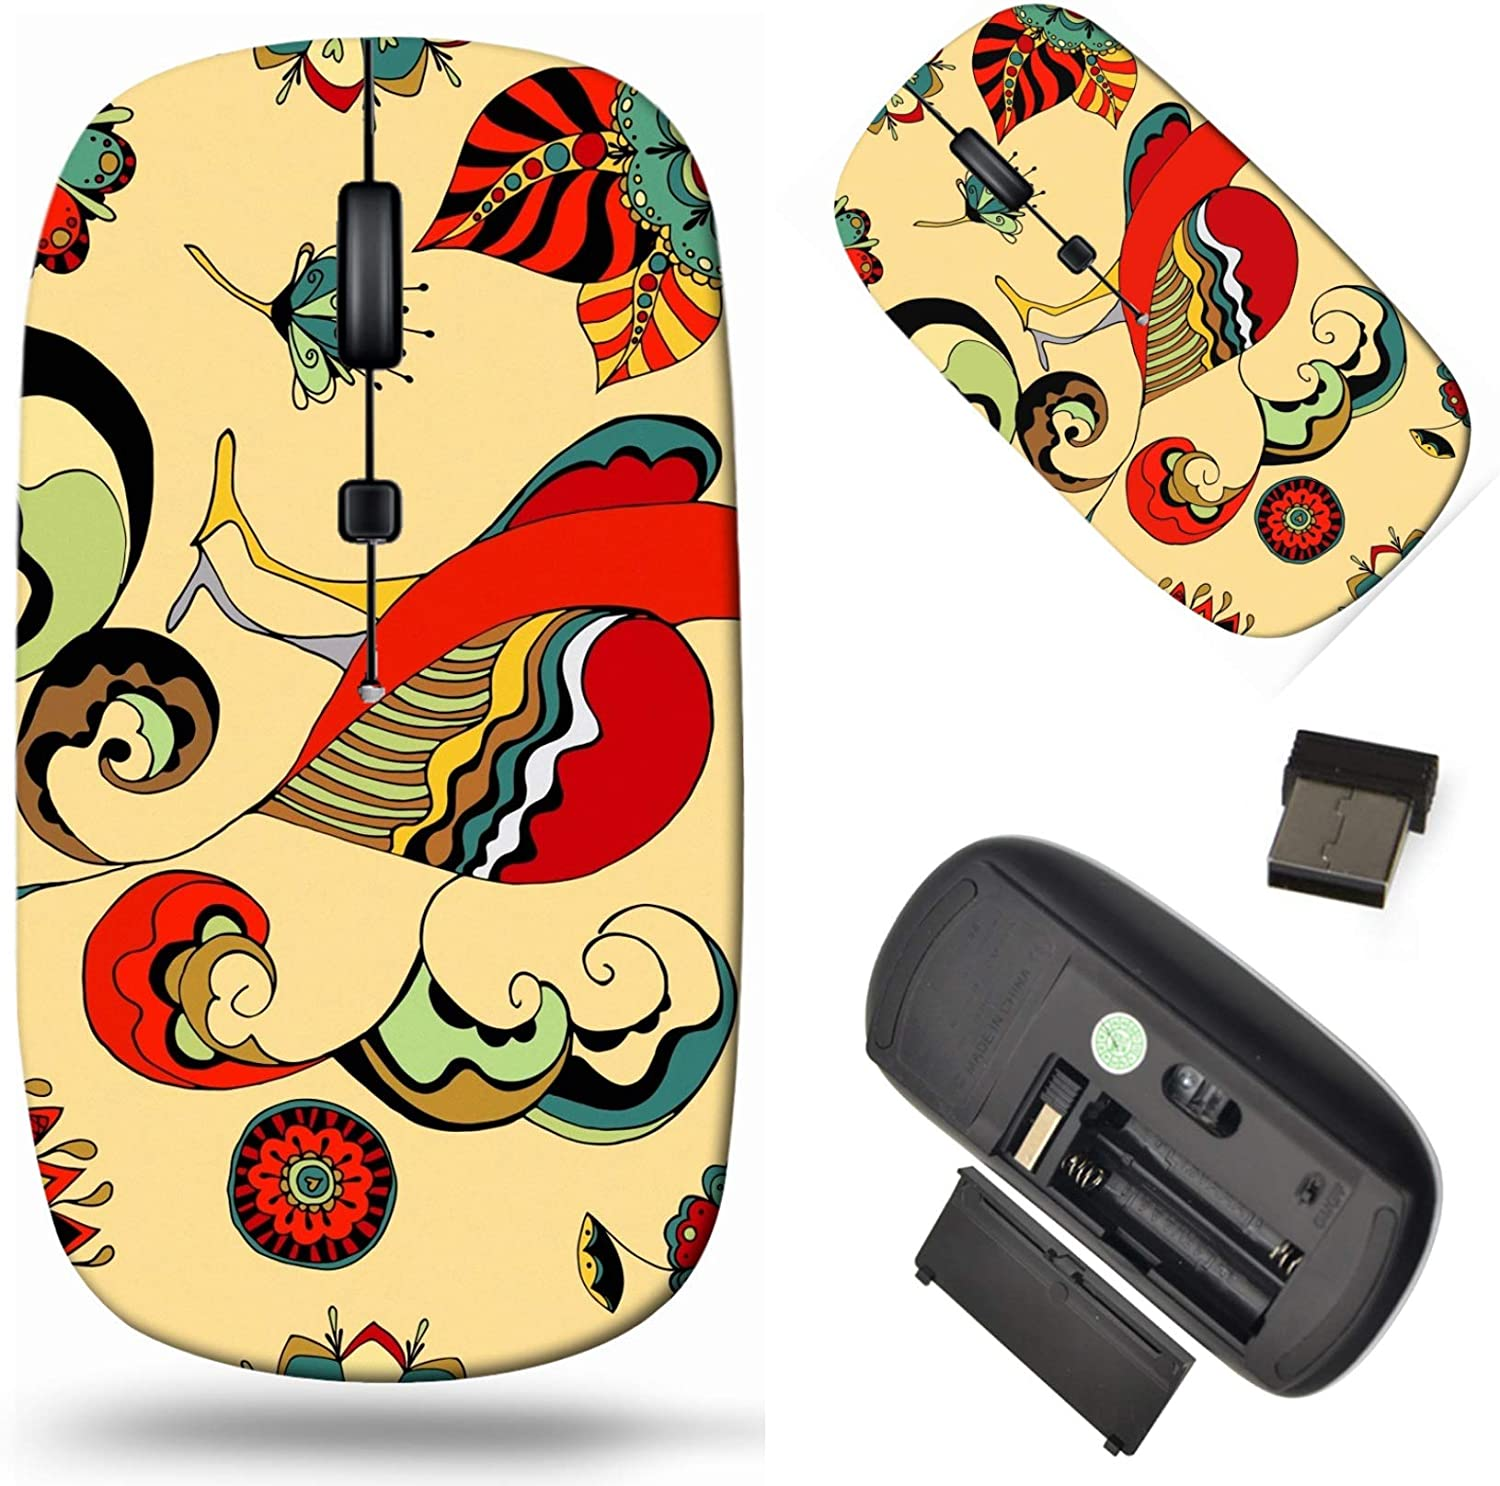 Weekly update Wireless Computer Mouse 2.4G with USB 70% OFF Outlet Cor Laptop Receiver